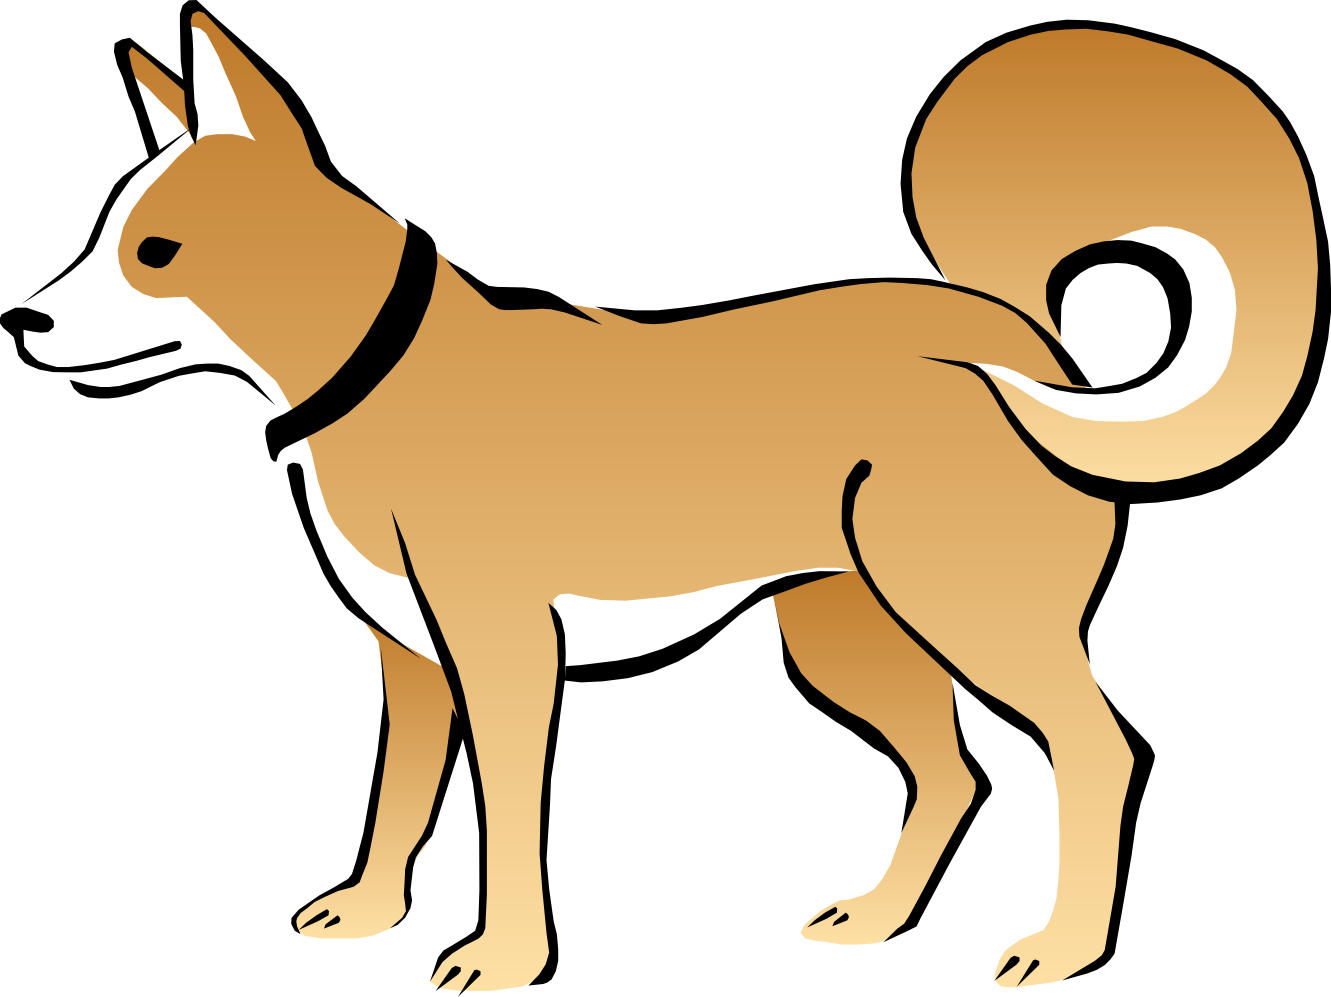 Pet clipart alien. Dog png image dogs